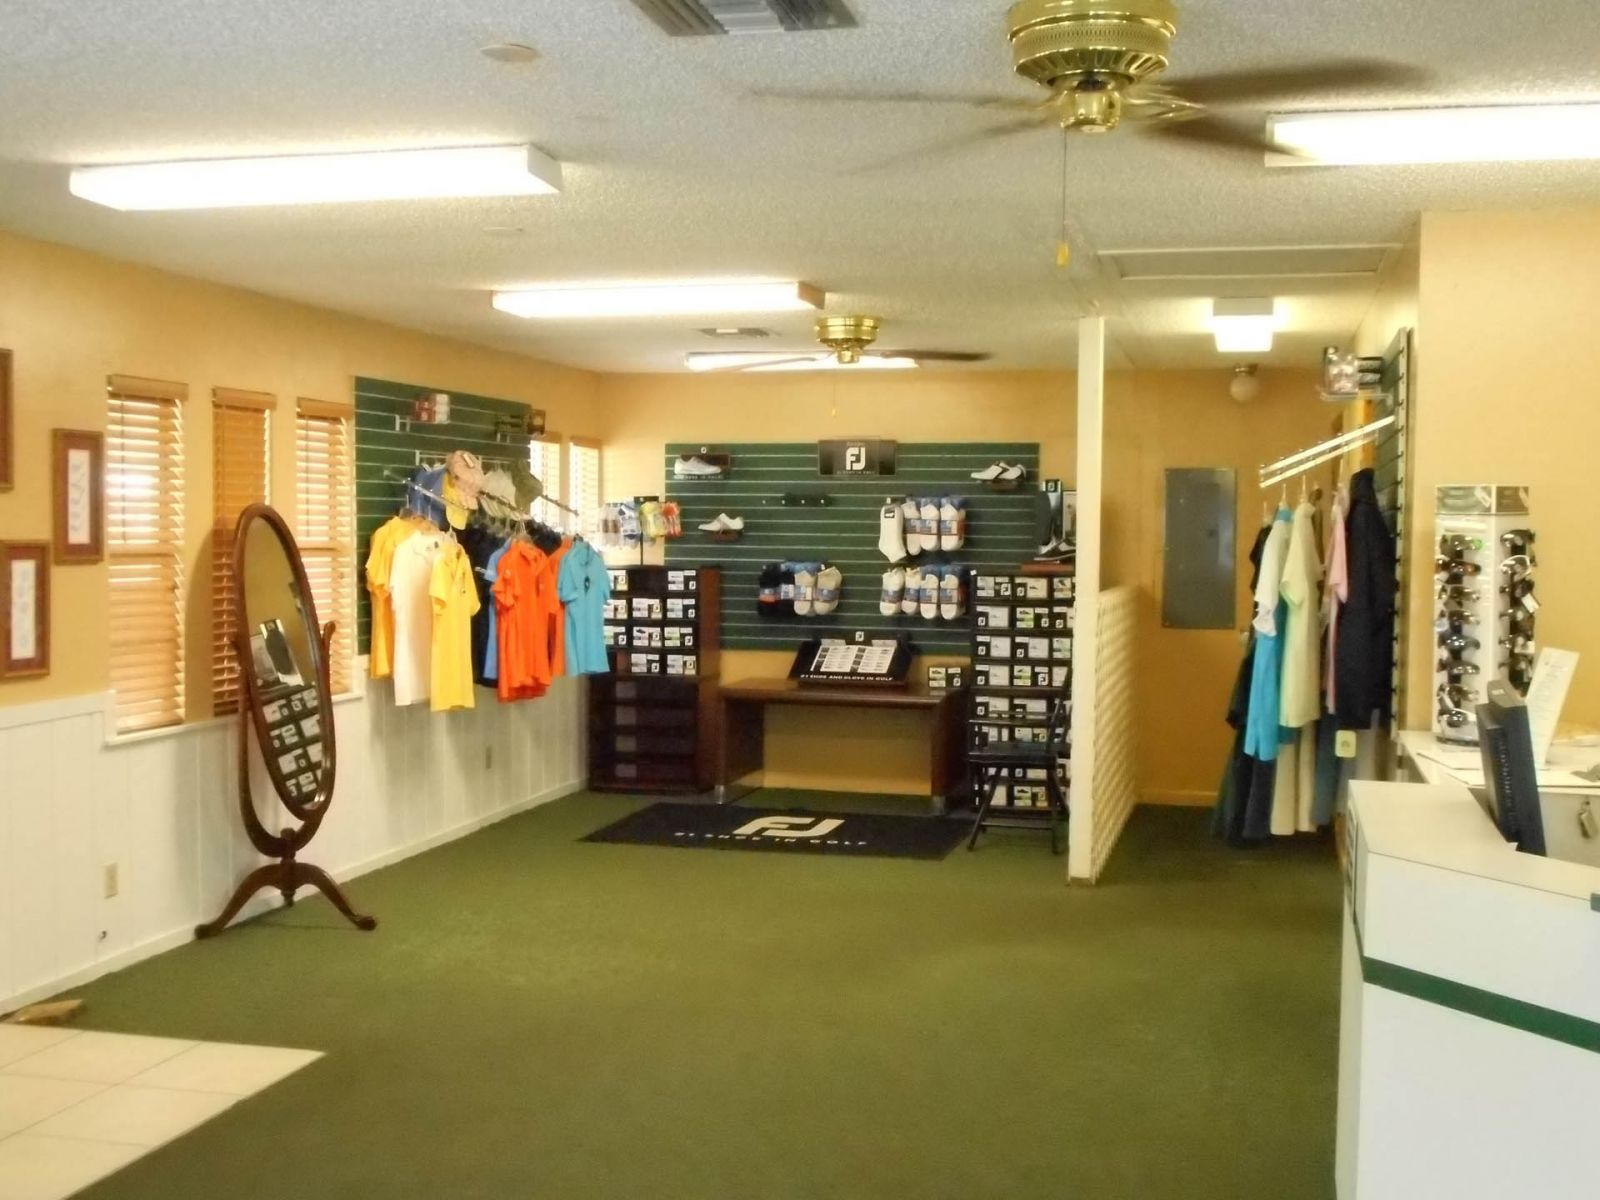 The inside of the Clerbrook Golf proshop